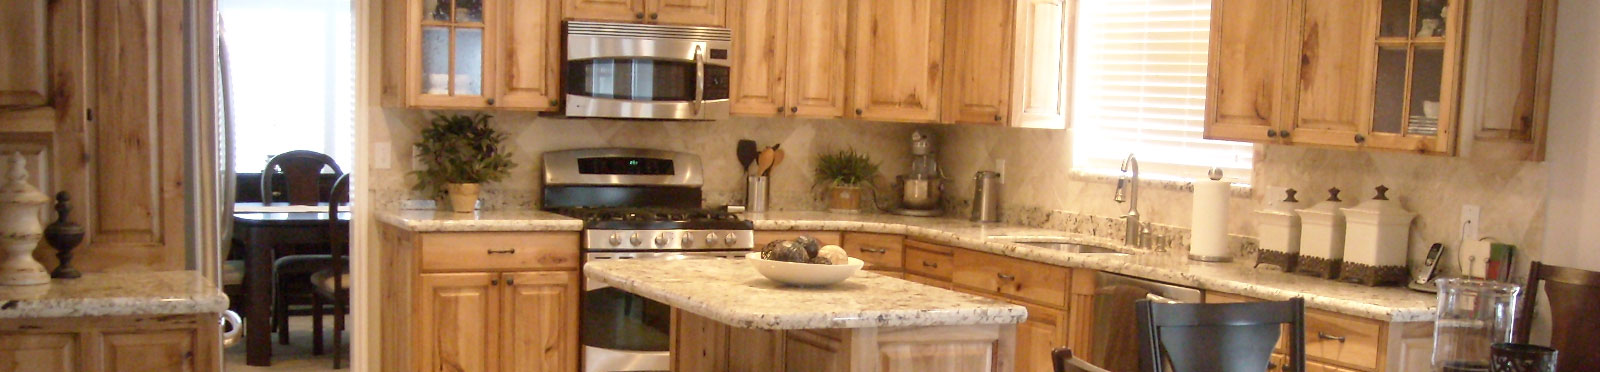 3 day kitchen and bath omaha nebraska day kitchen bath remodeling omaha and lincoln bathroom